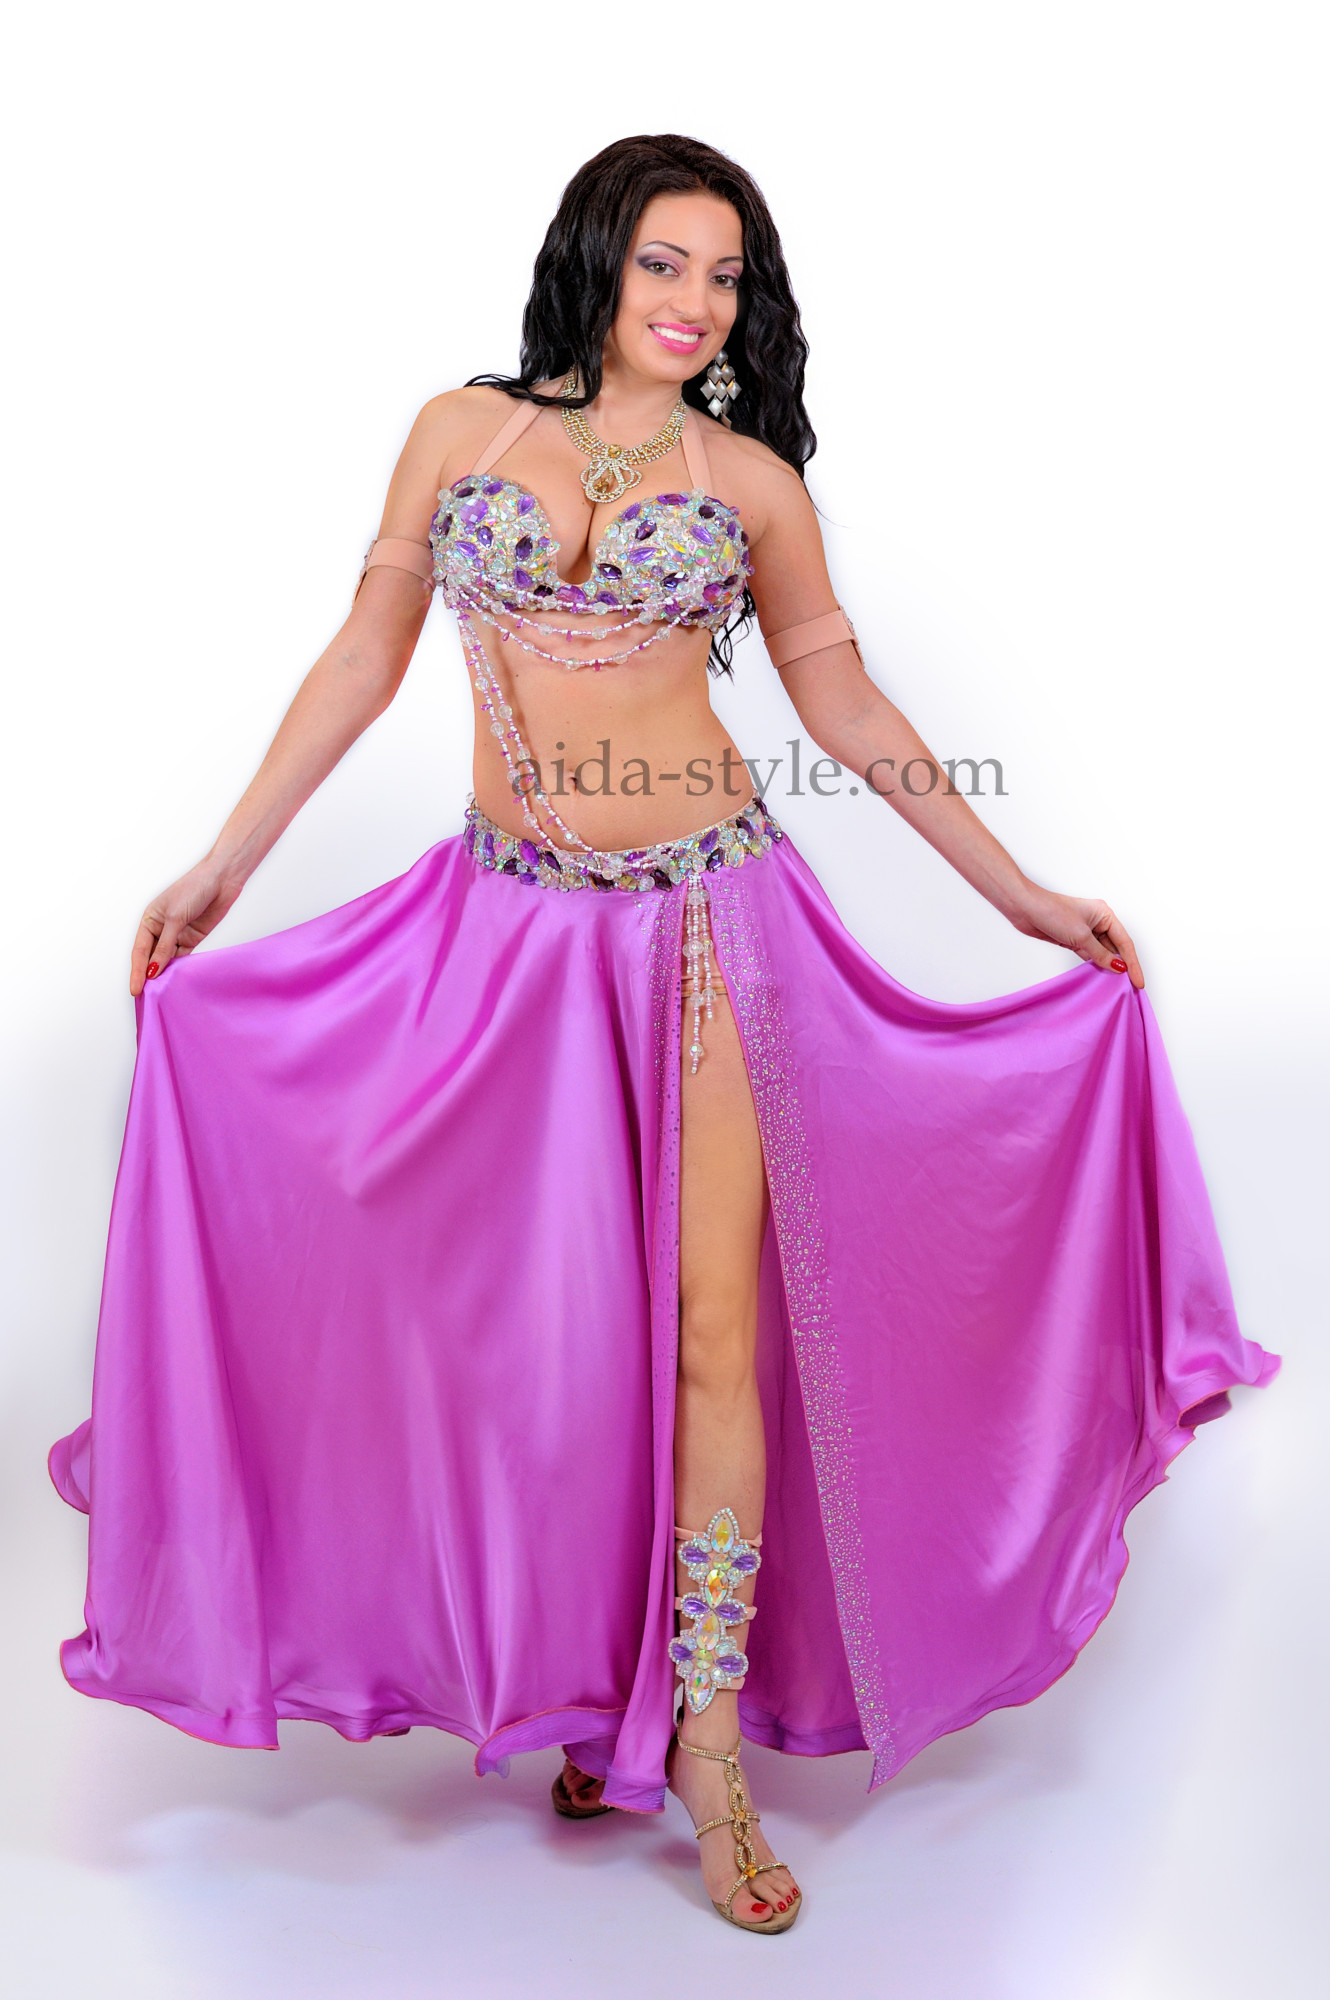 Professional belly dance costume in lilac color with long bouffant skirt